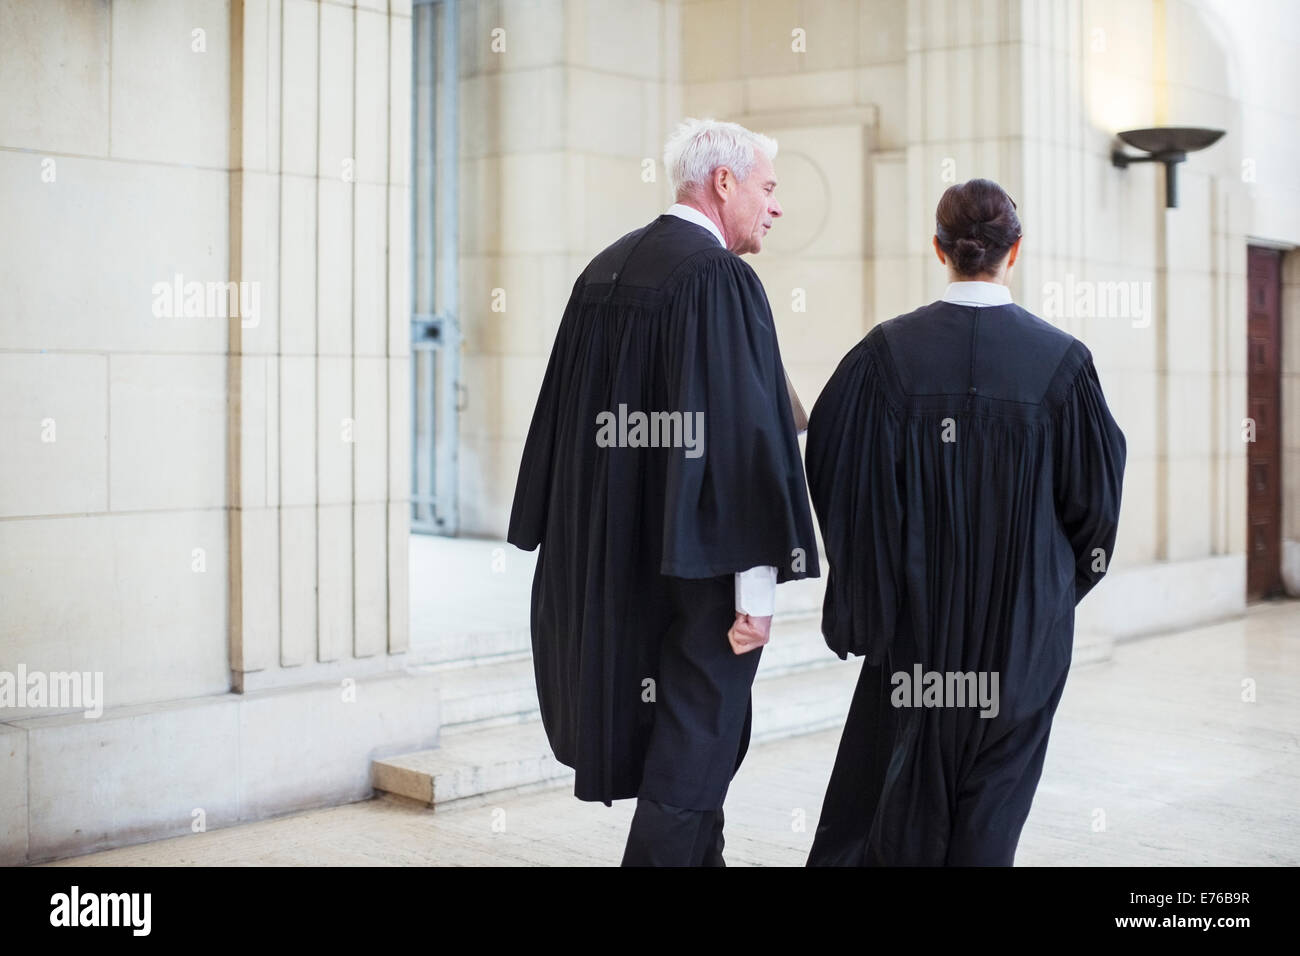 Judges walking through courthouse together - Stock Image